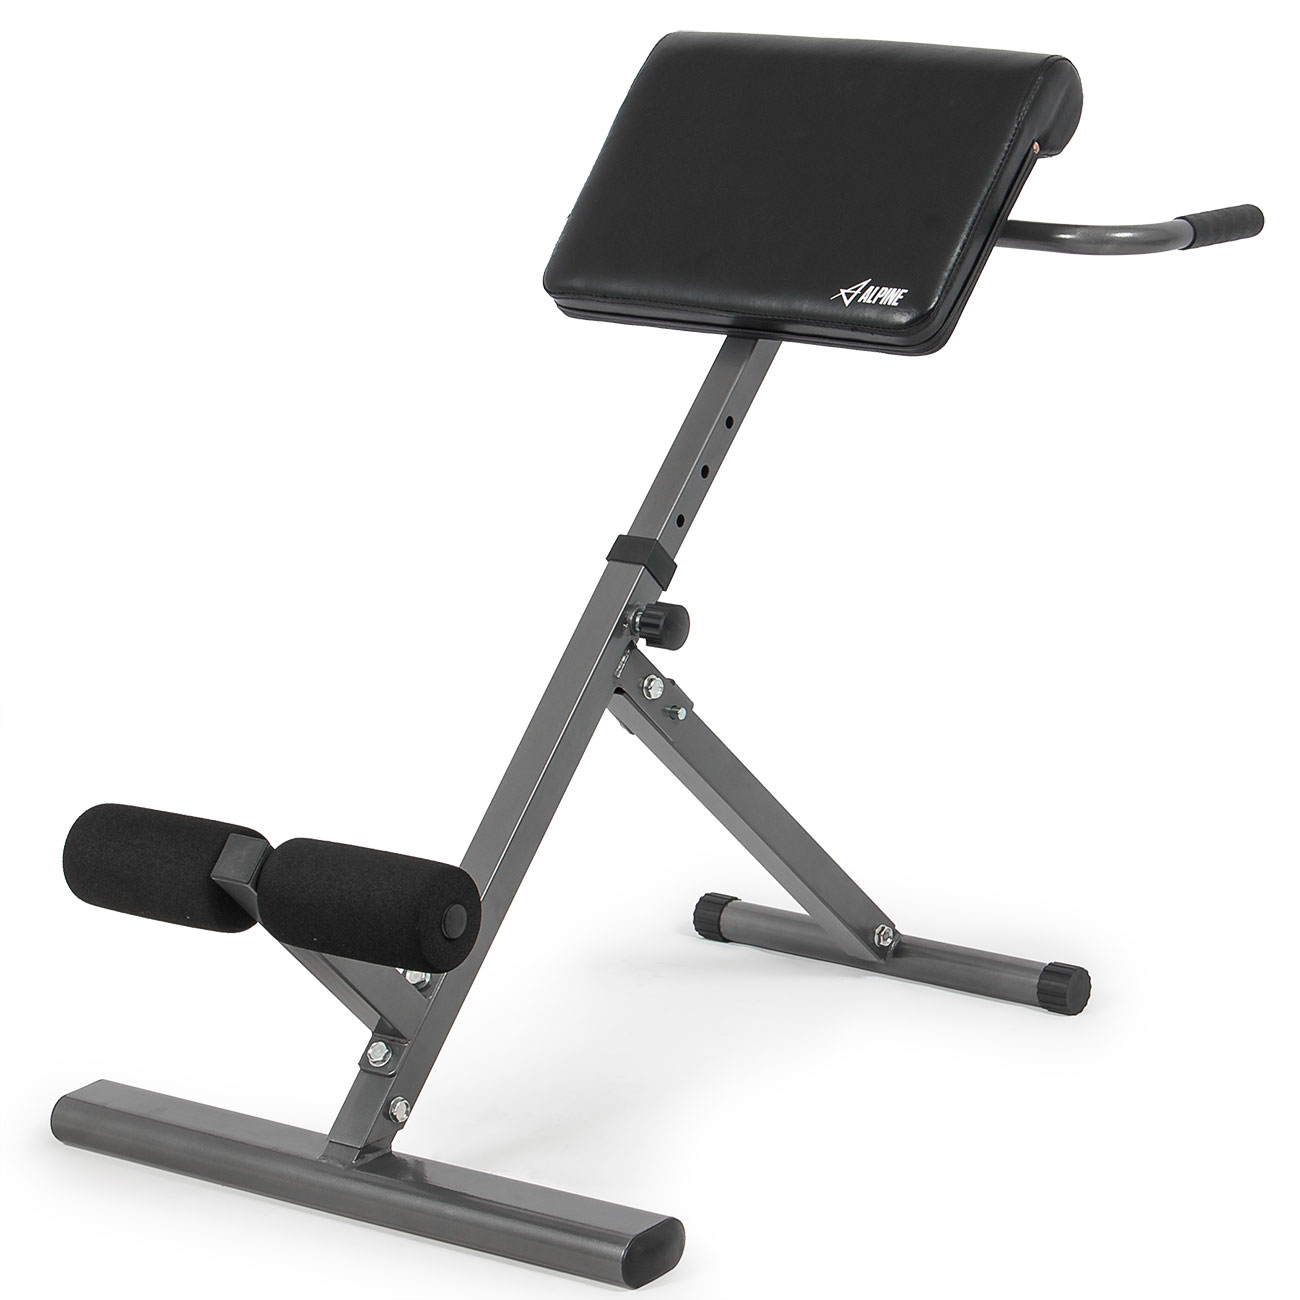 ab cruncher chair 2 person camping adjustable back bench foldable hyperextension exercise